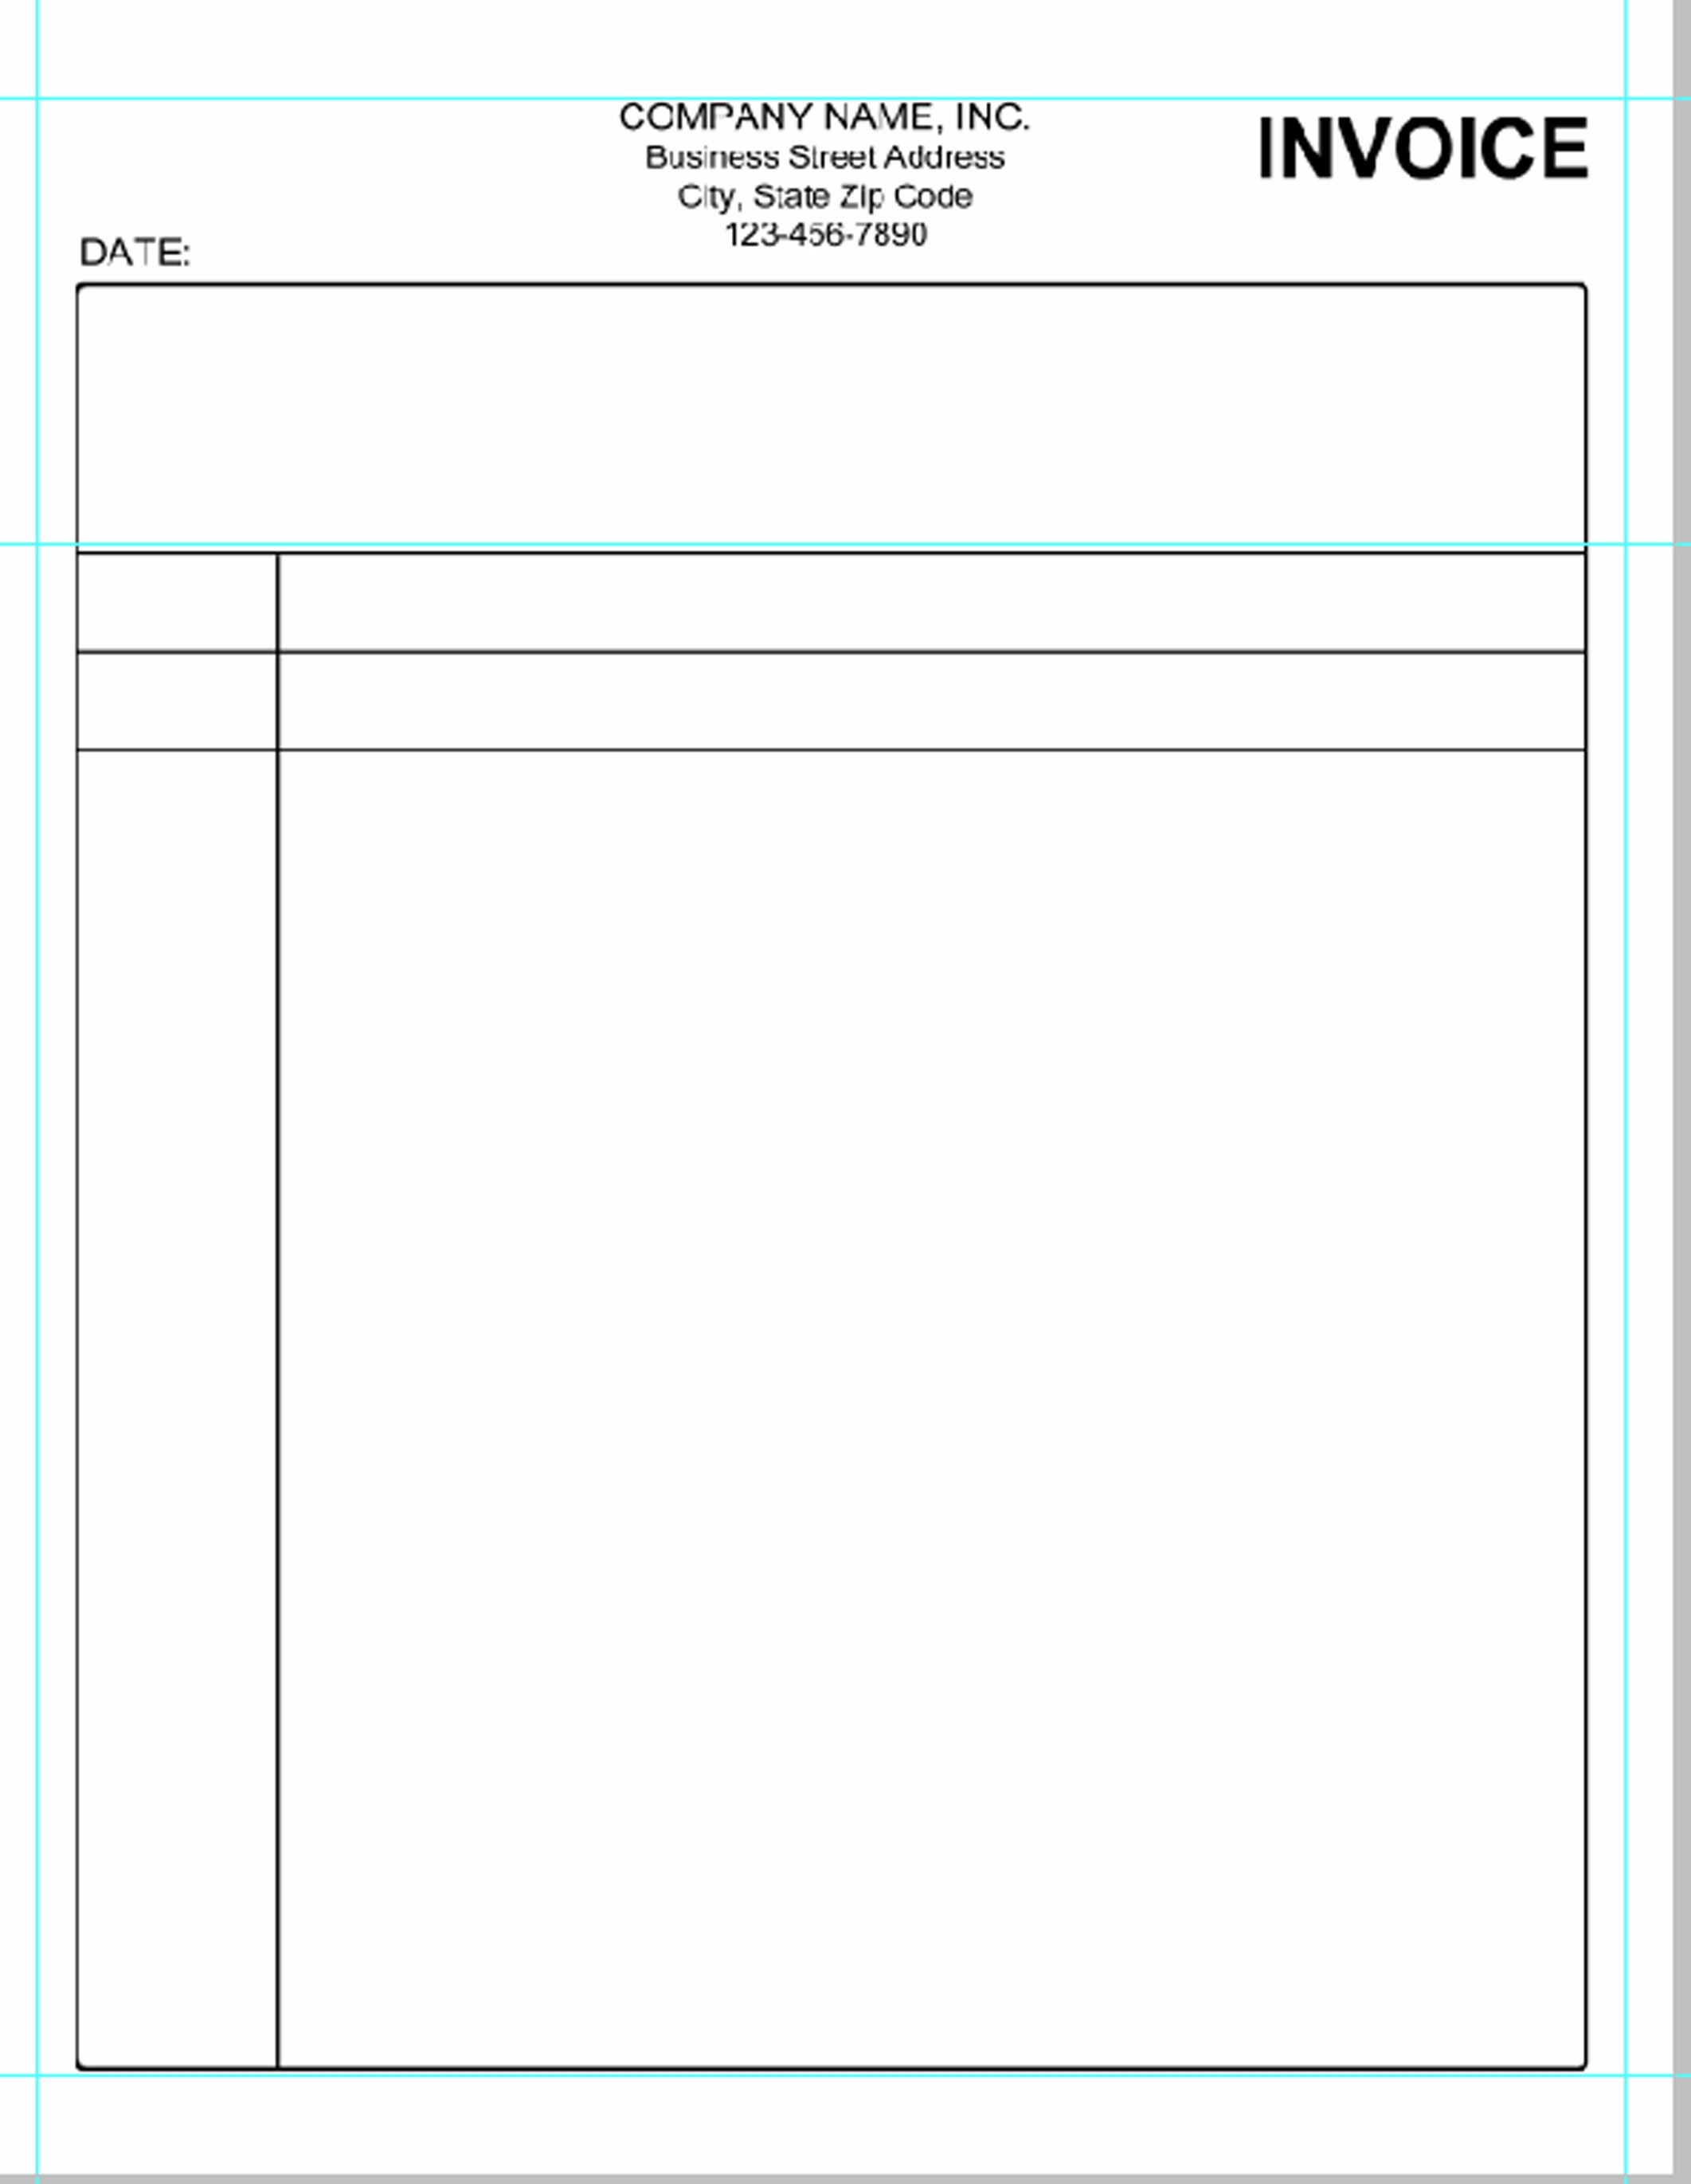 blank invoice template microsoft word invoice template free 2016 simple invoice template microsoft word